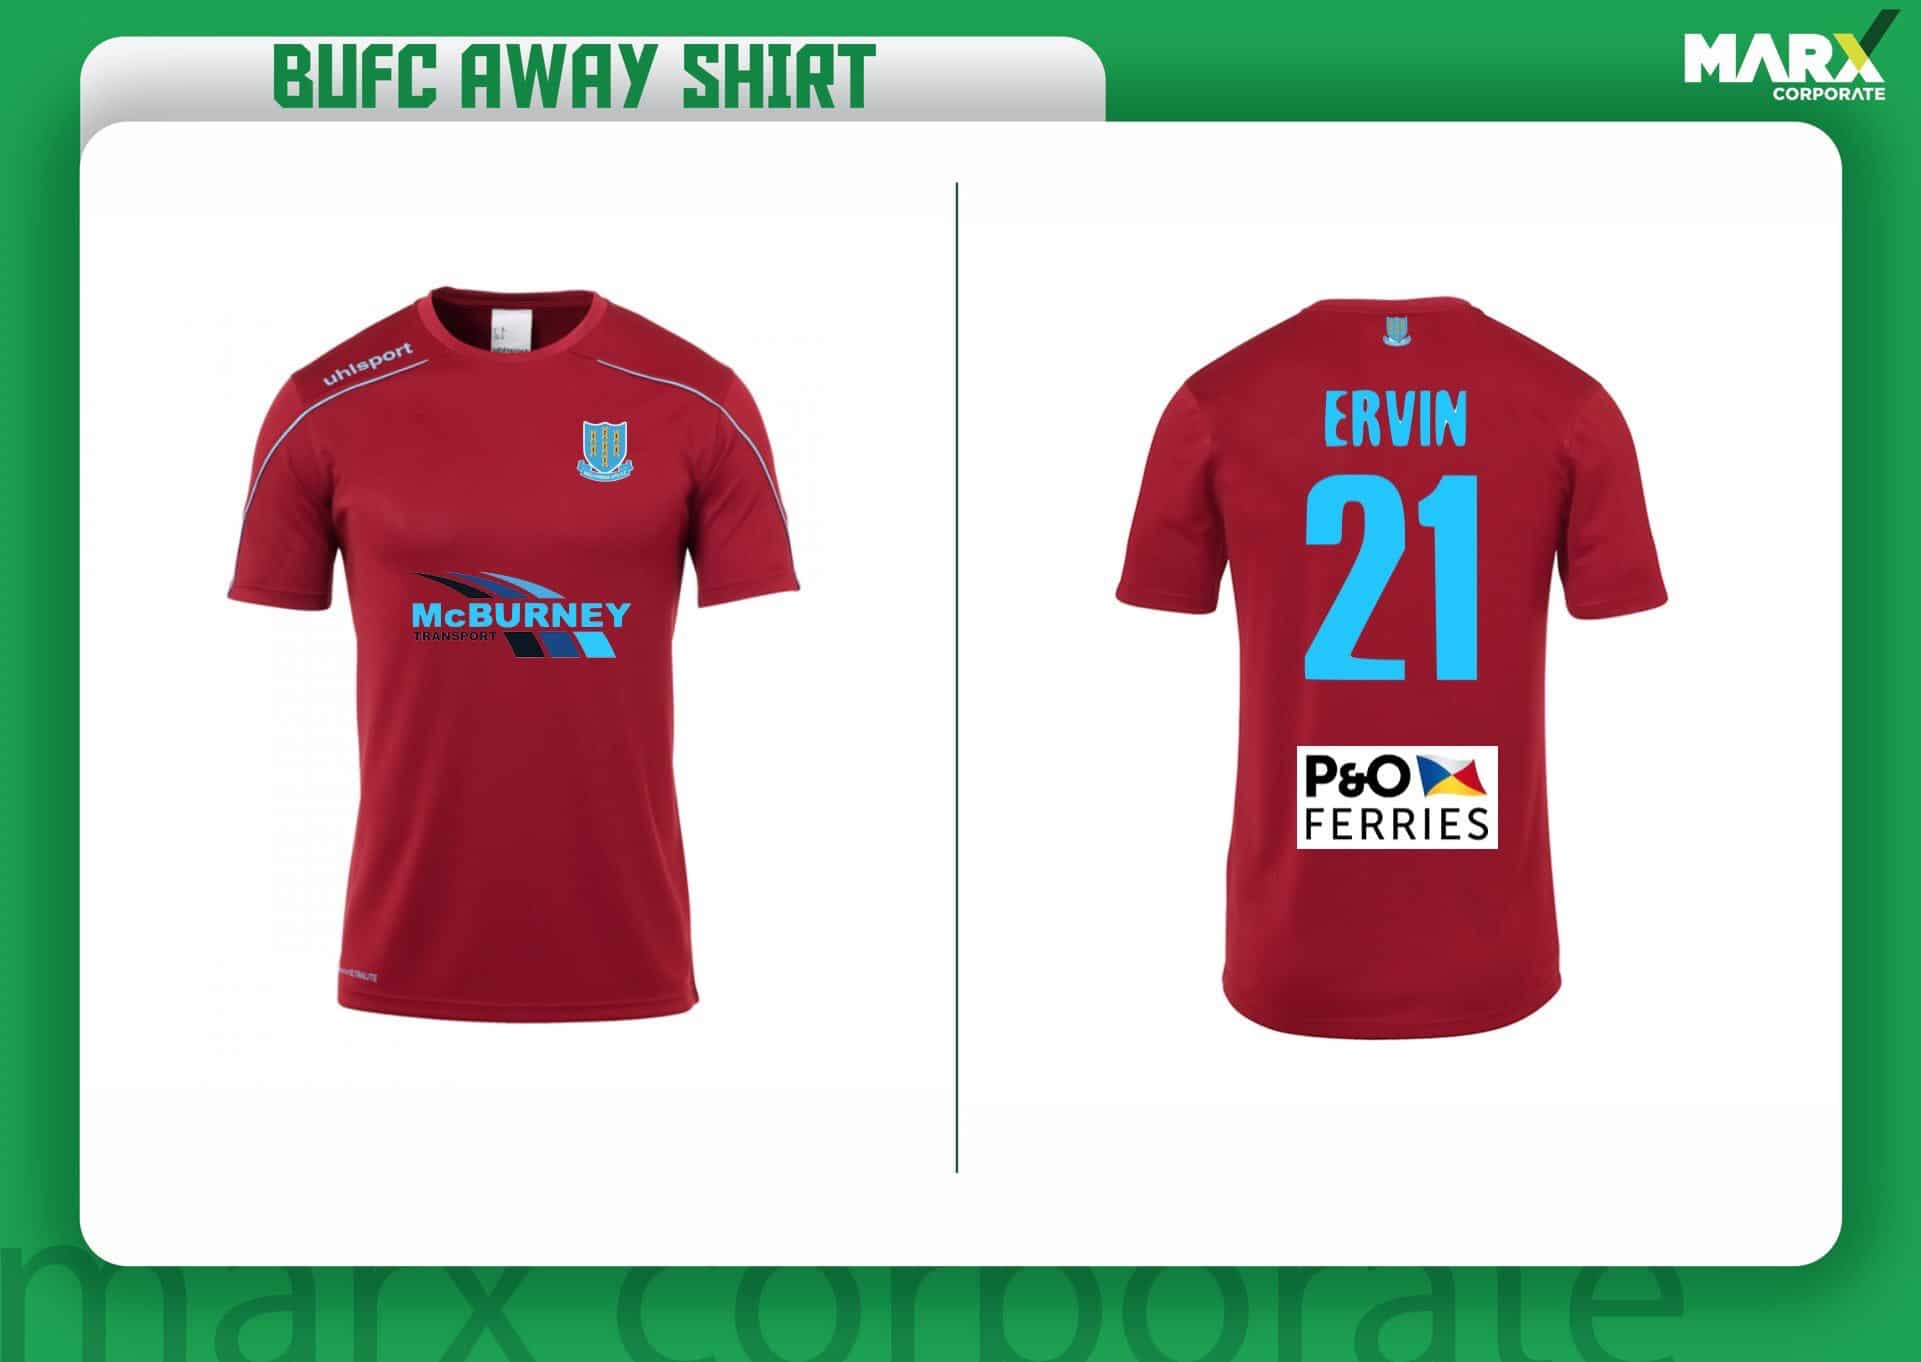 8136a824f49 Cheap Non League Football Shirts - Nils Stucki Kieferorthopäde